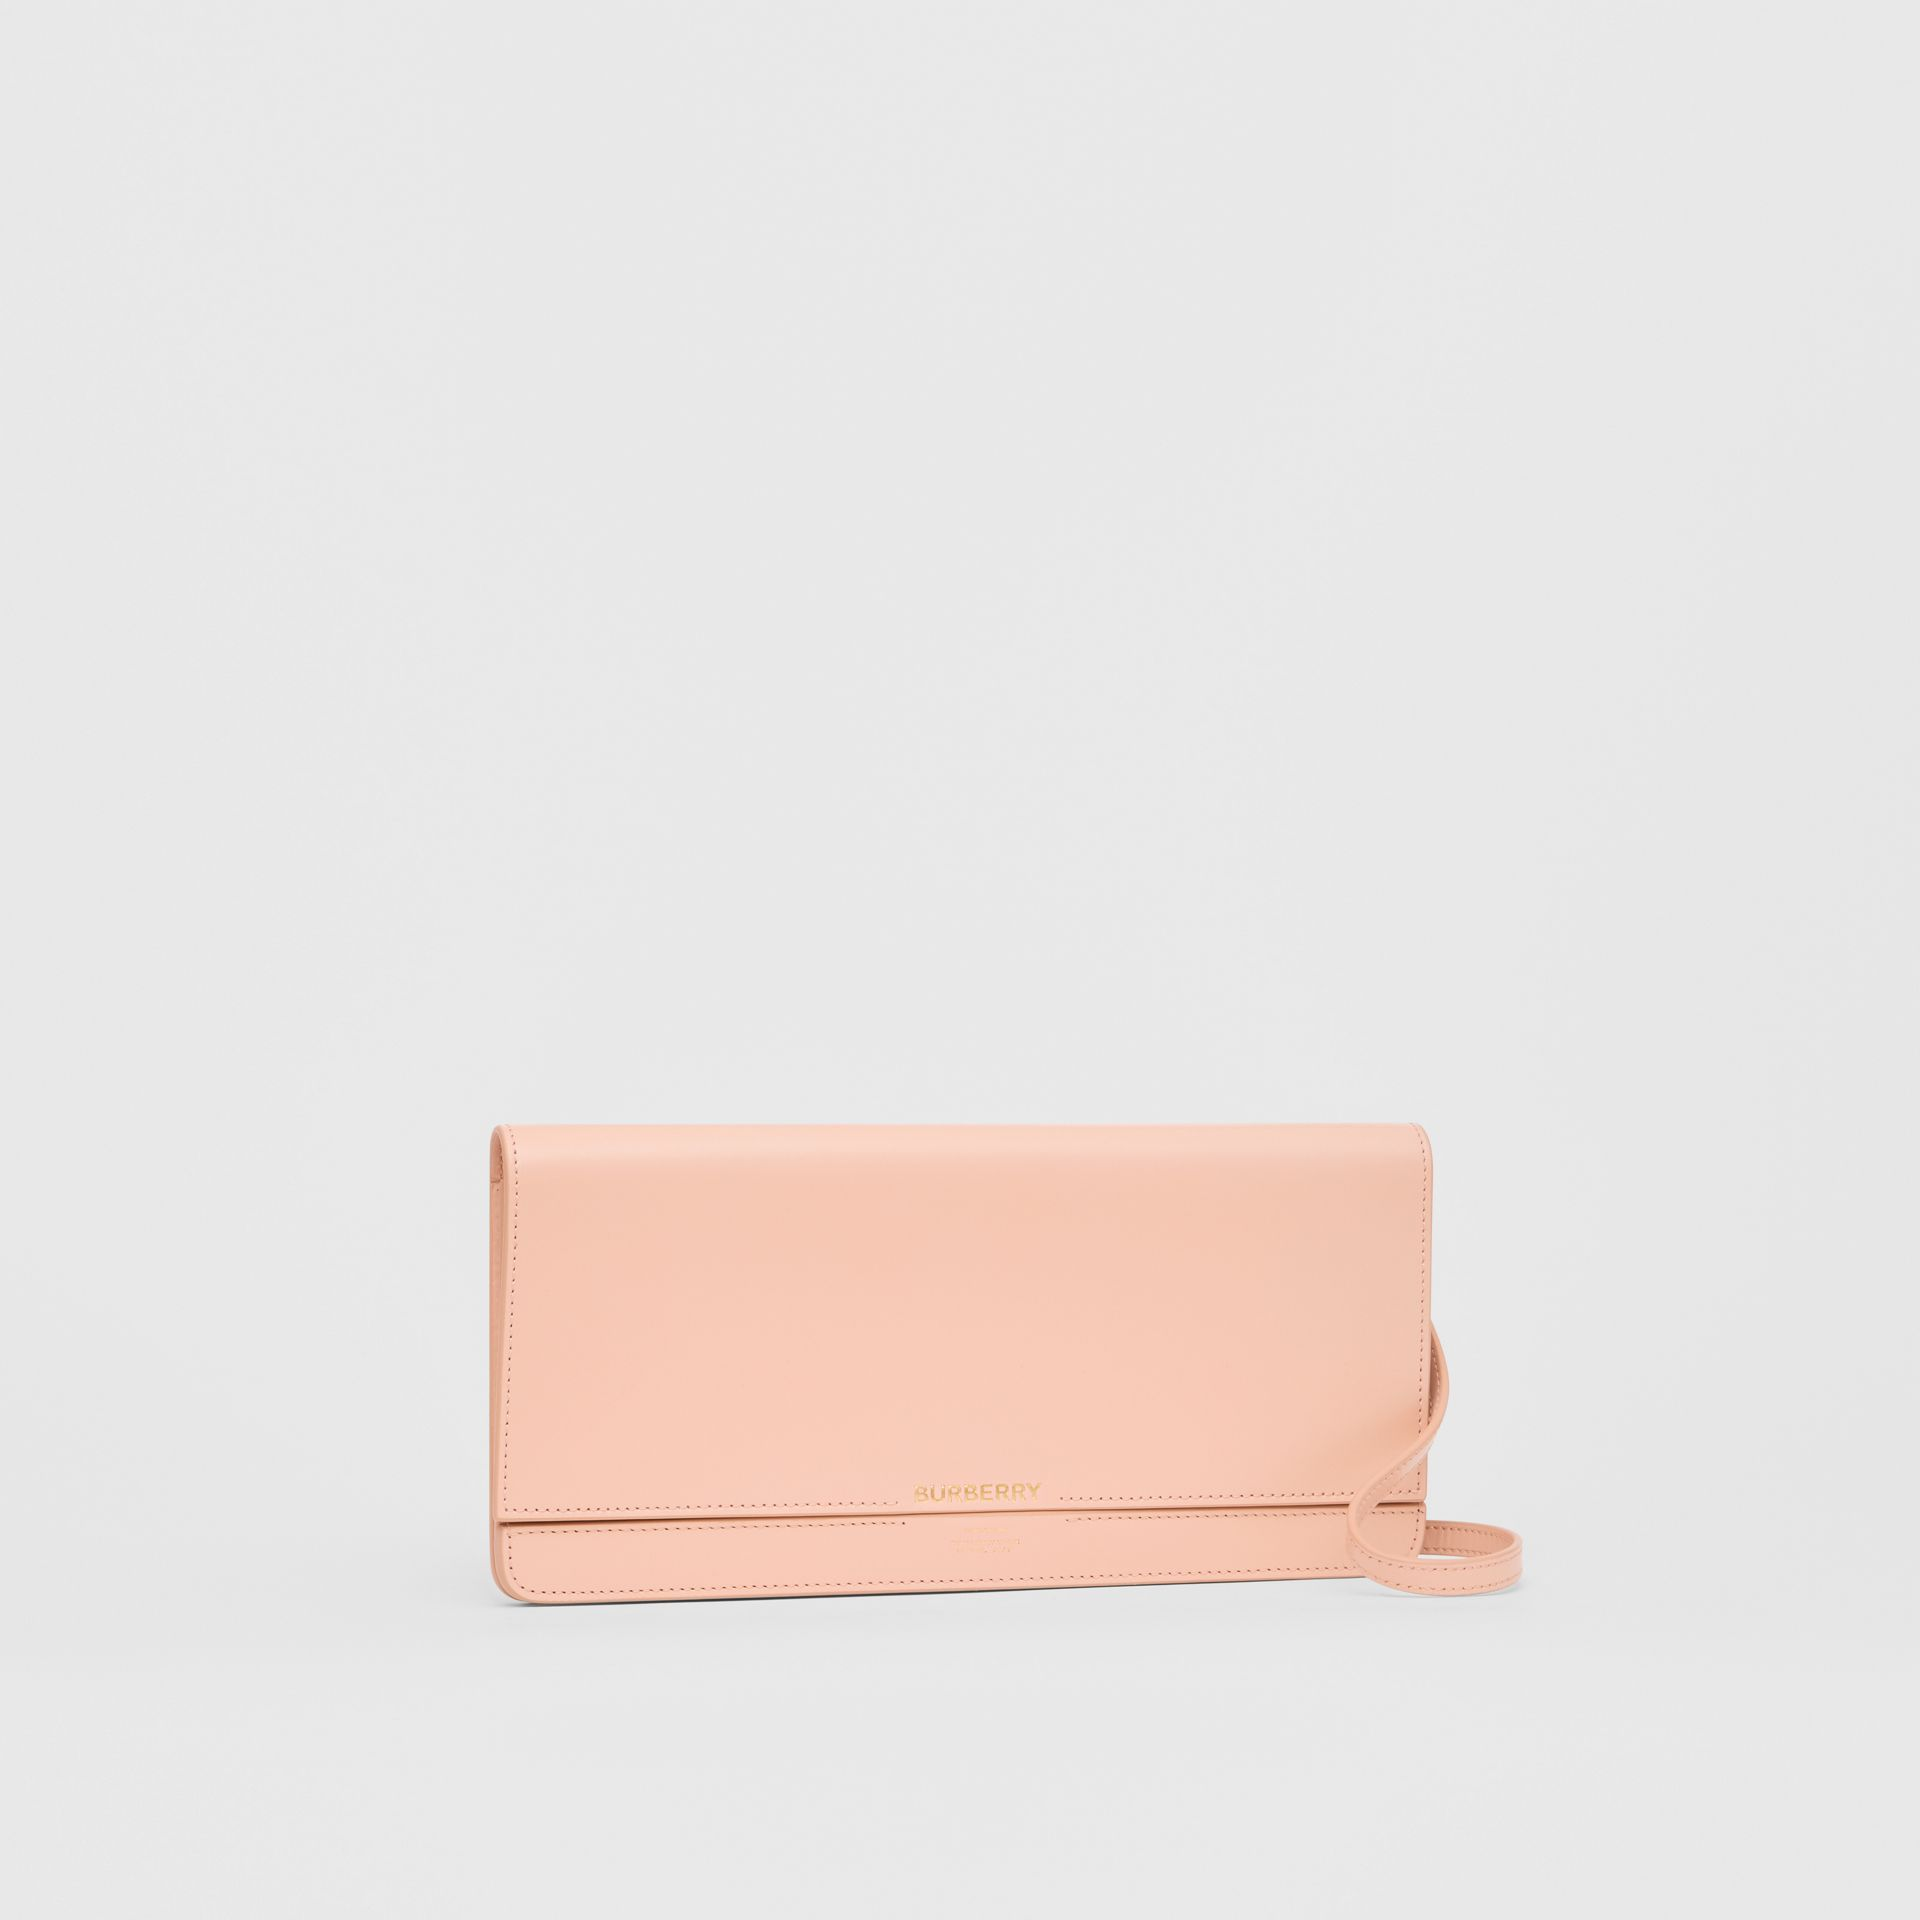 Horseferry Print Leather Bag with Detachable Strap in Blush Pink - Women | Burberry - gallery image 4